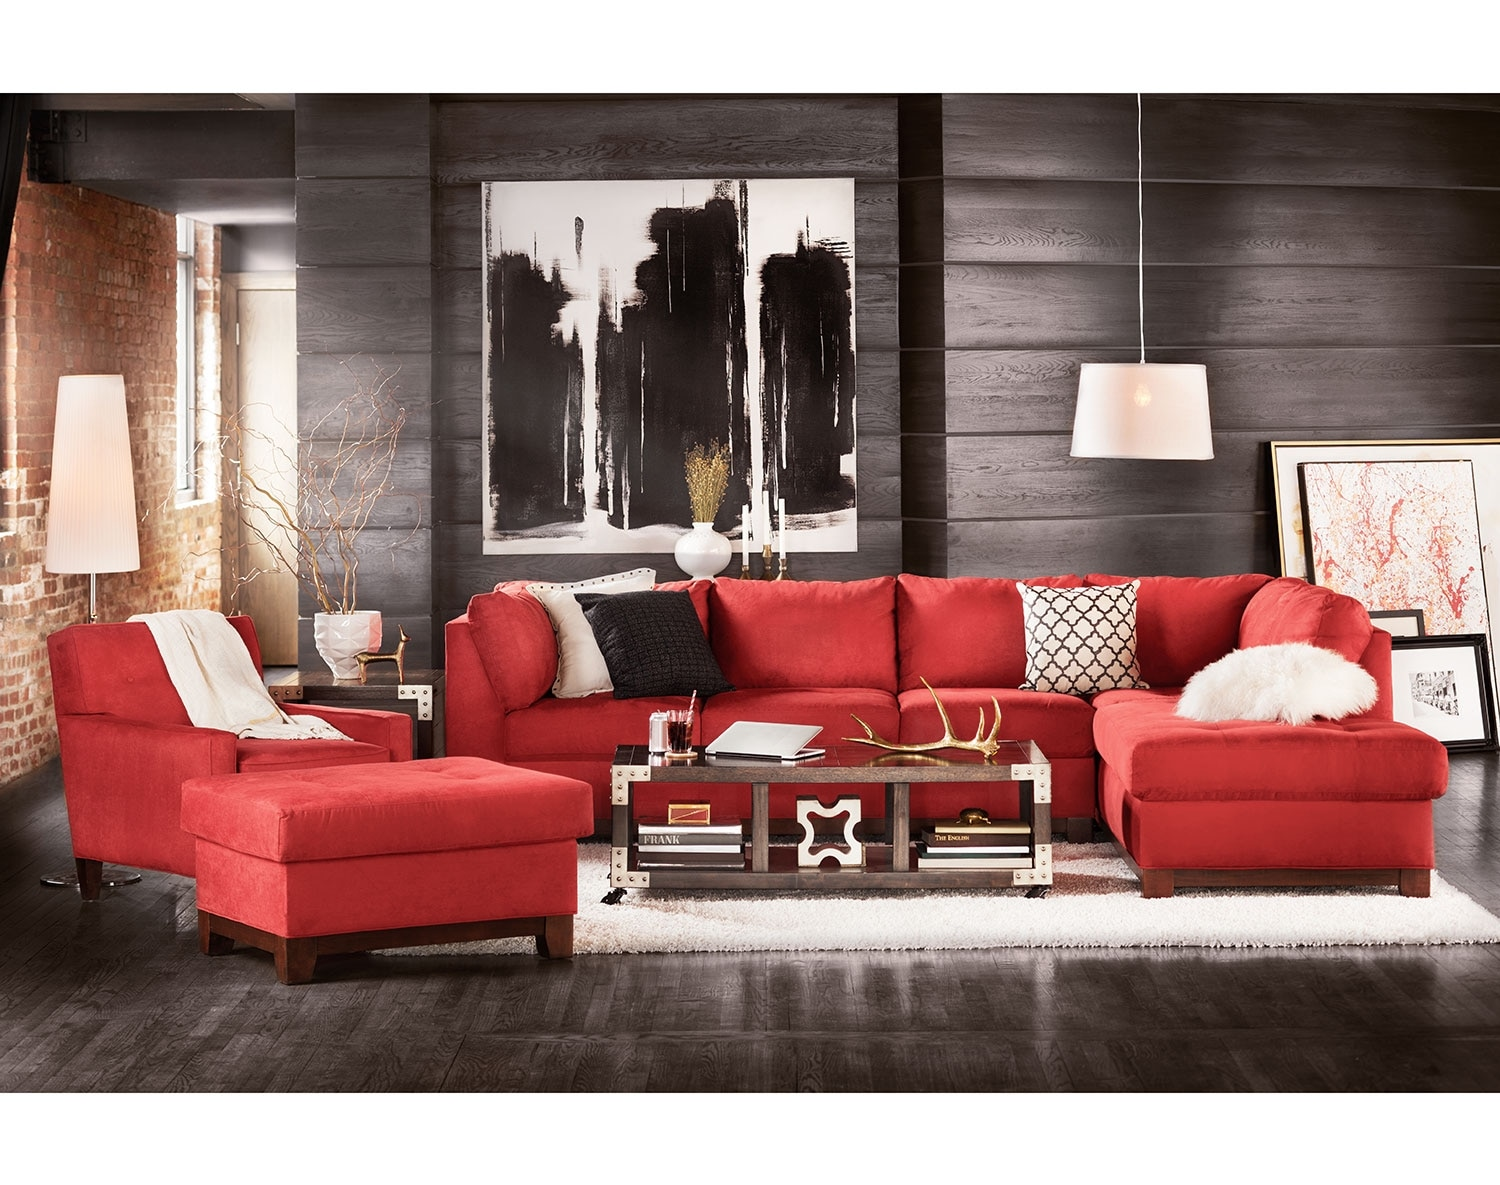 Sitting Room Couch Home And Interior Design